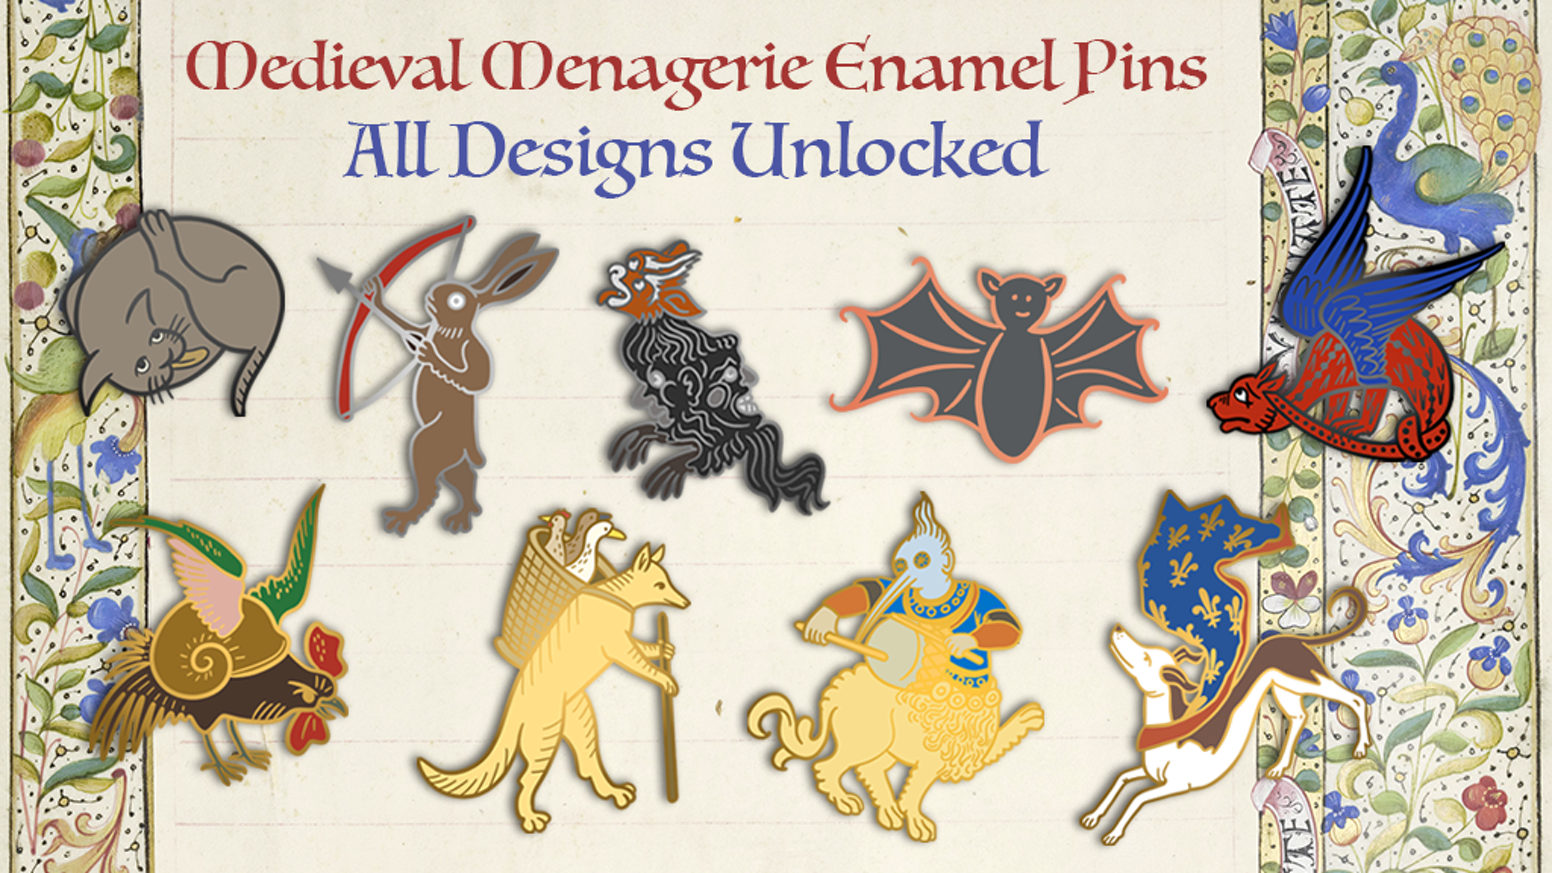 A herd of Beastly Hard Enamel pins, straight from the manuscript margins. Dragons, Foxes, Rabbits, Dogs, Cats & some other Wee Beasties! Follow on Twitter @fromvellum